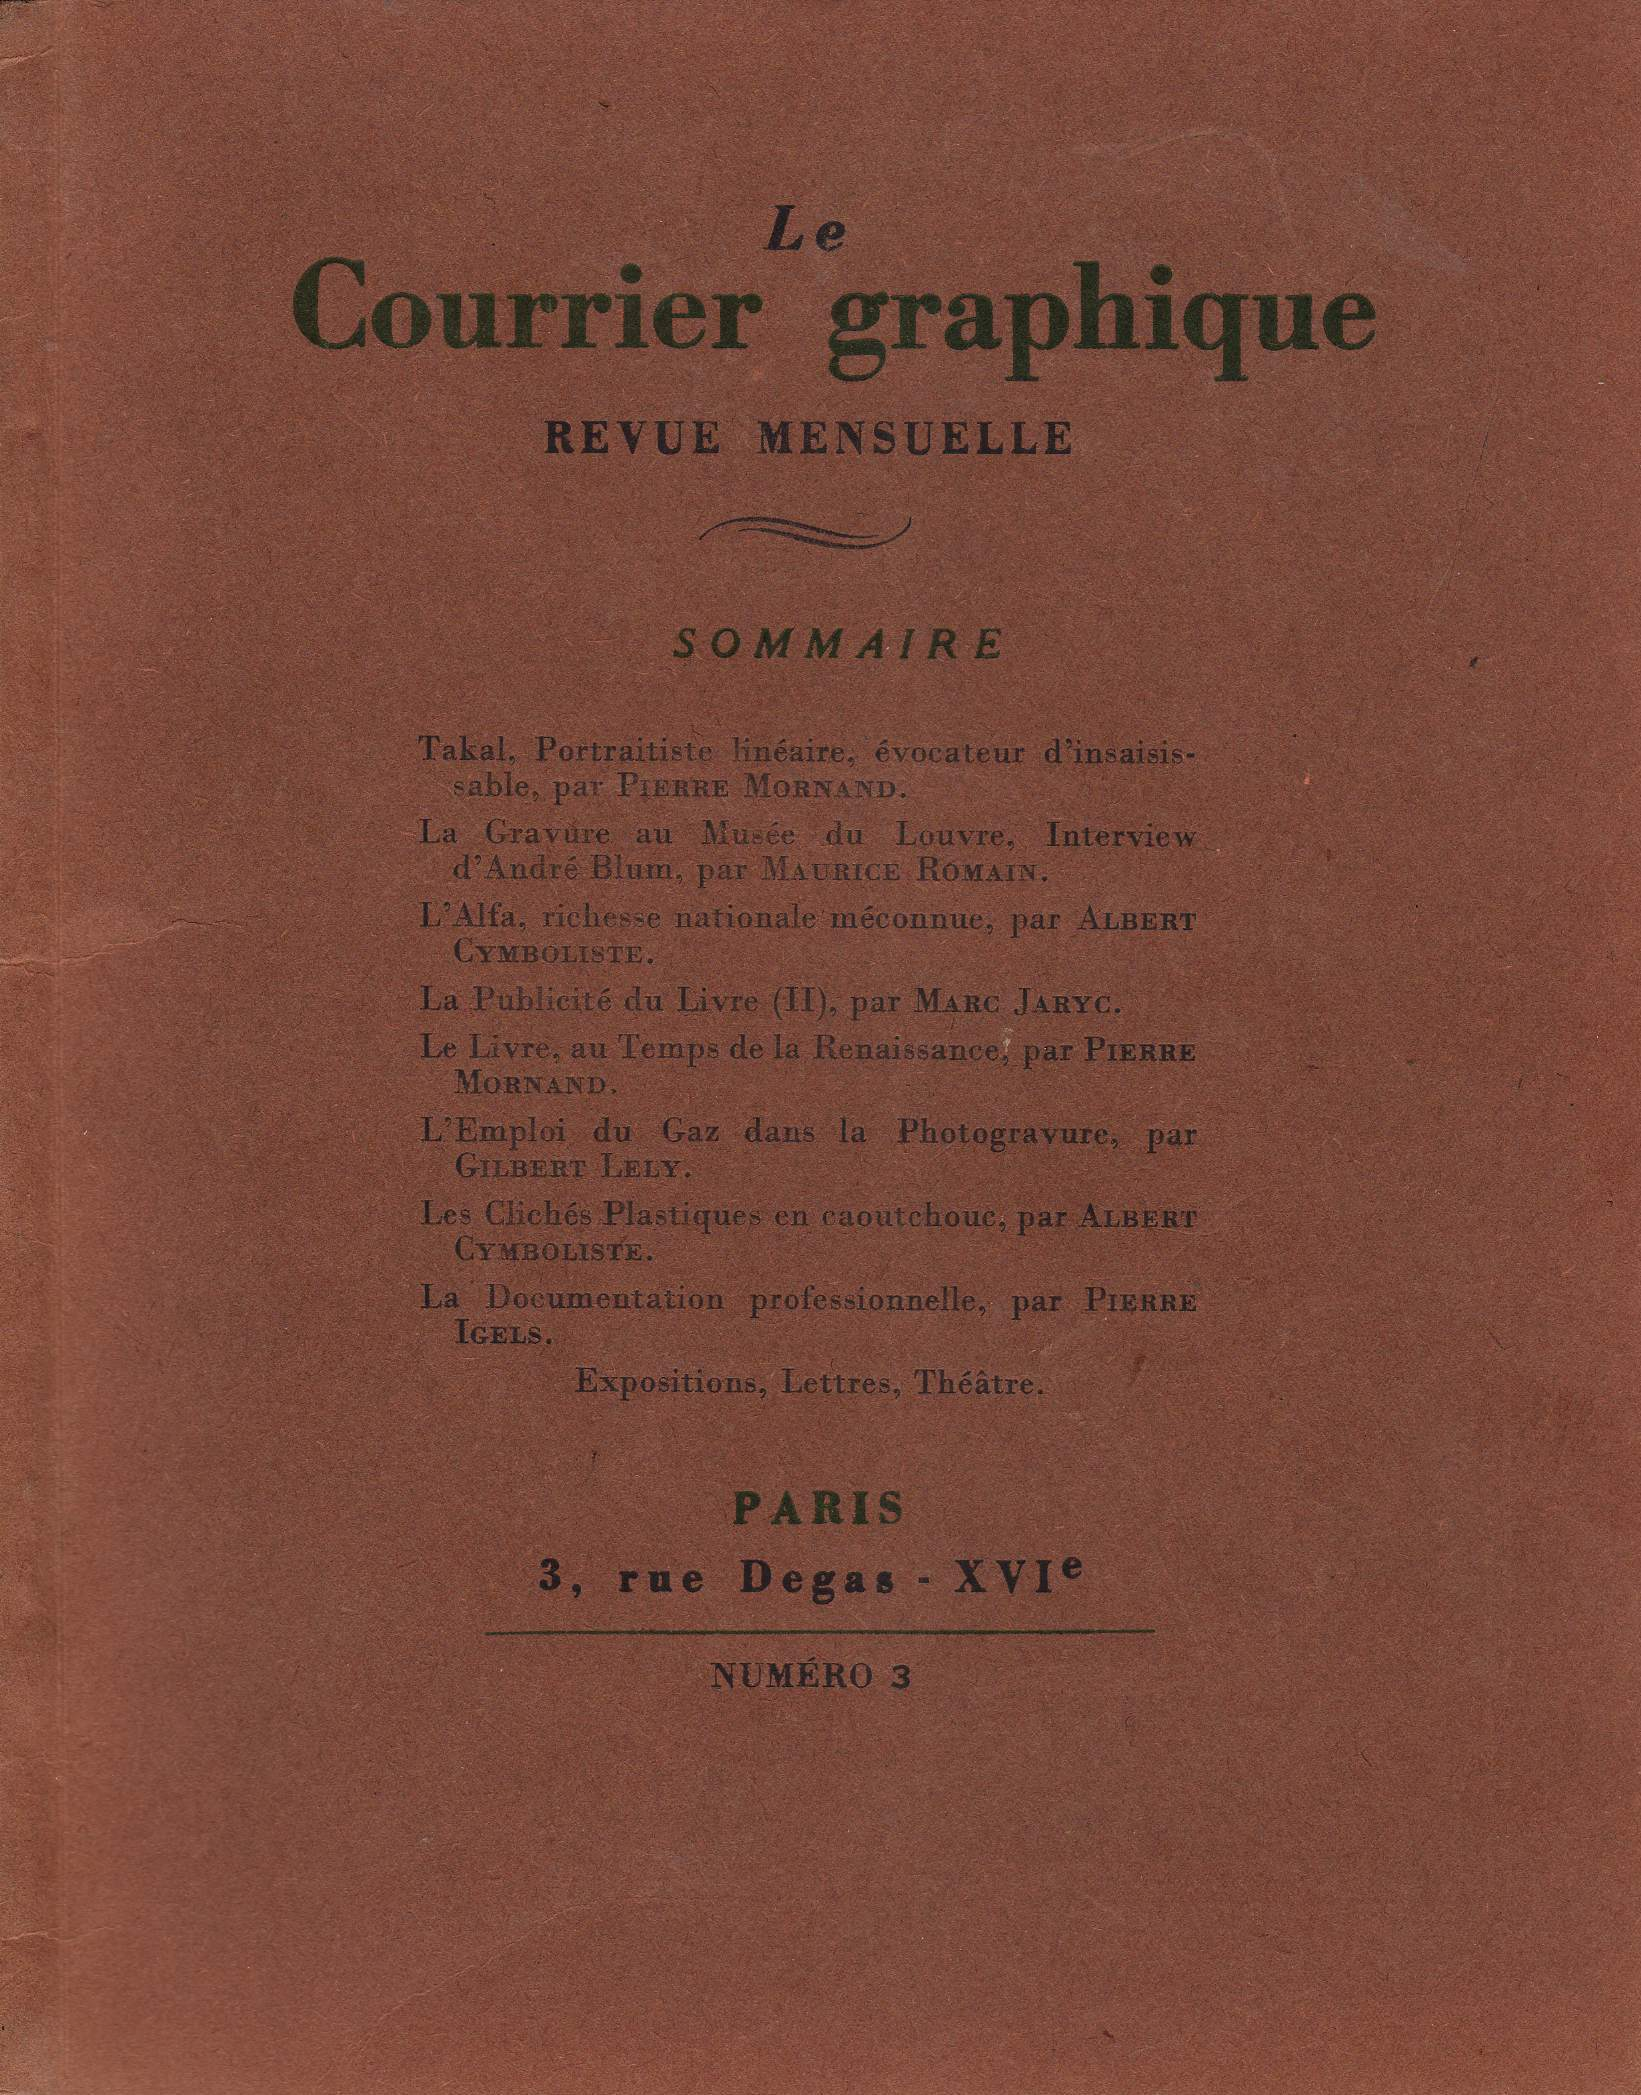 Courrier-Graphique03.jpg